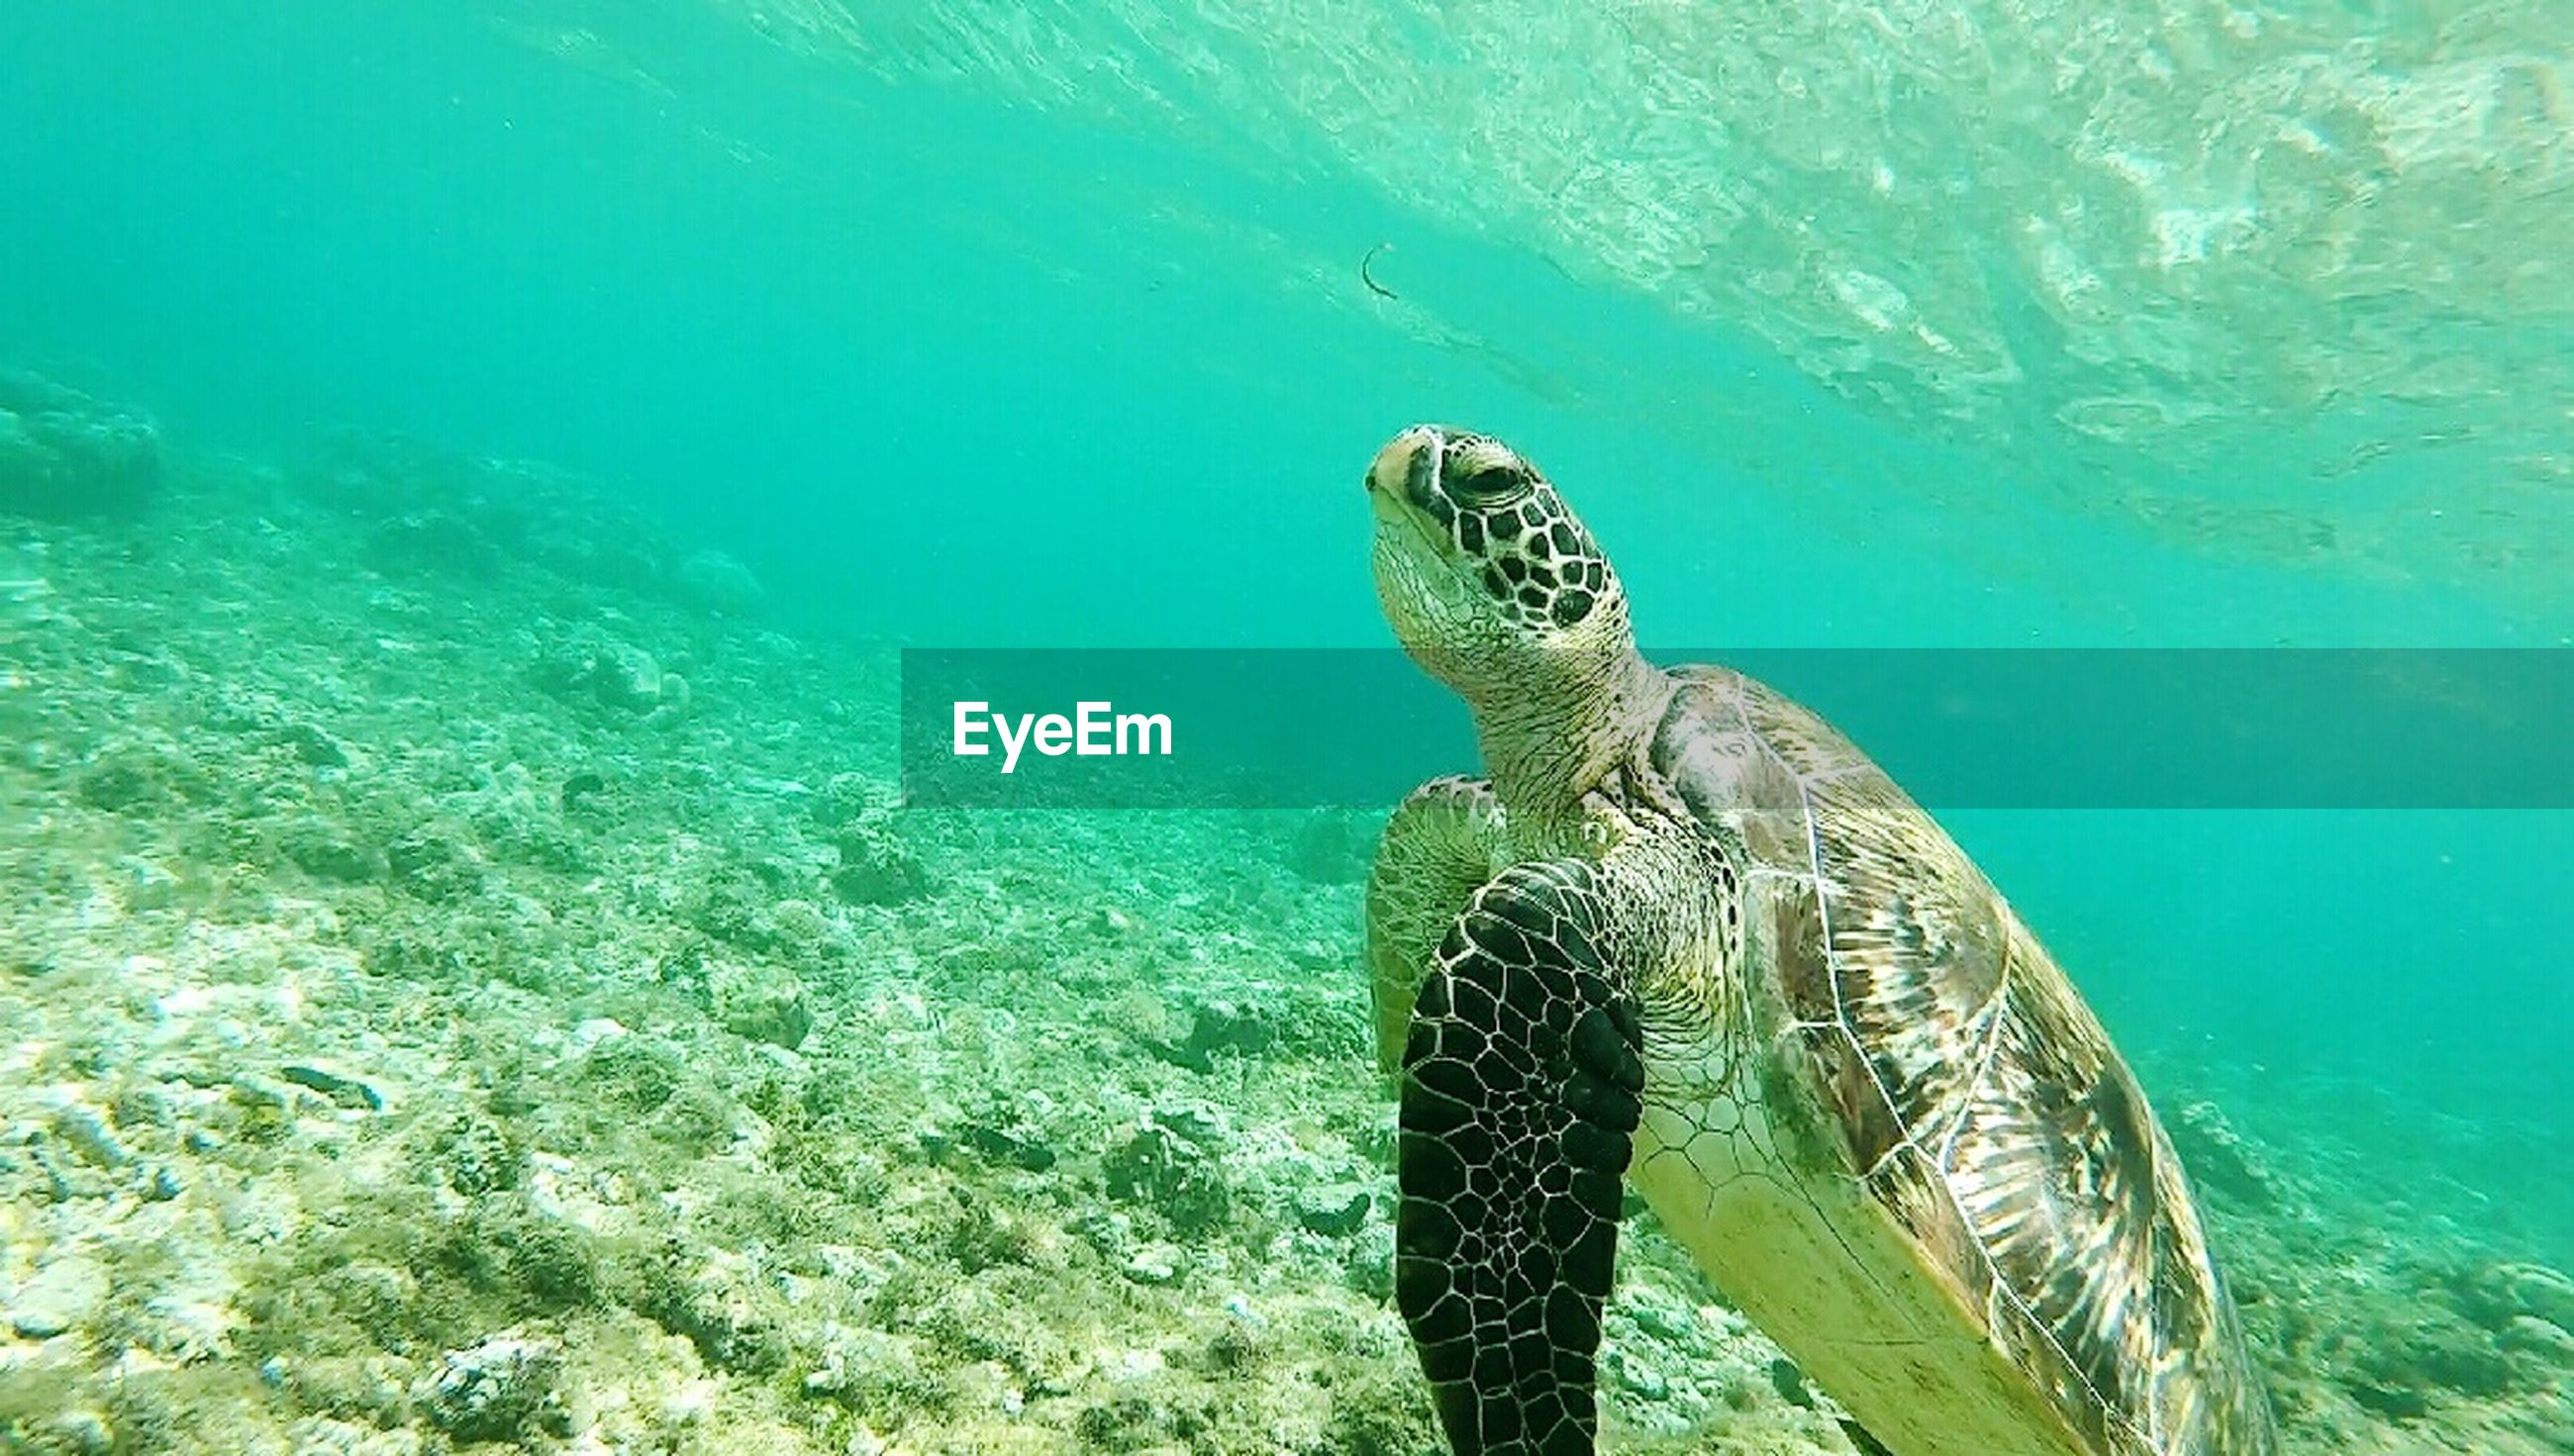 turtle, reptile, sea, sea turtle, one animal, animal wildlife, animals in the wild, water, undersea, sea life, animal themes, nature, underwater, swimming, day, tortoise, endangered species, tortoise shell, outdoors, no people, beauty in nature, mammal